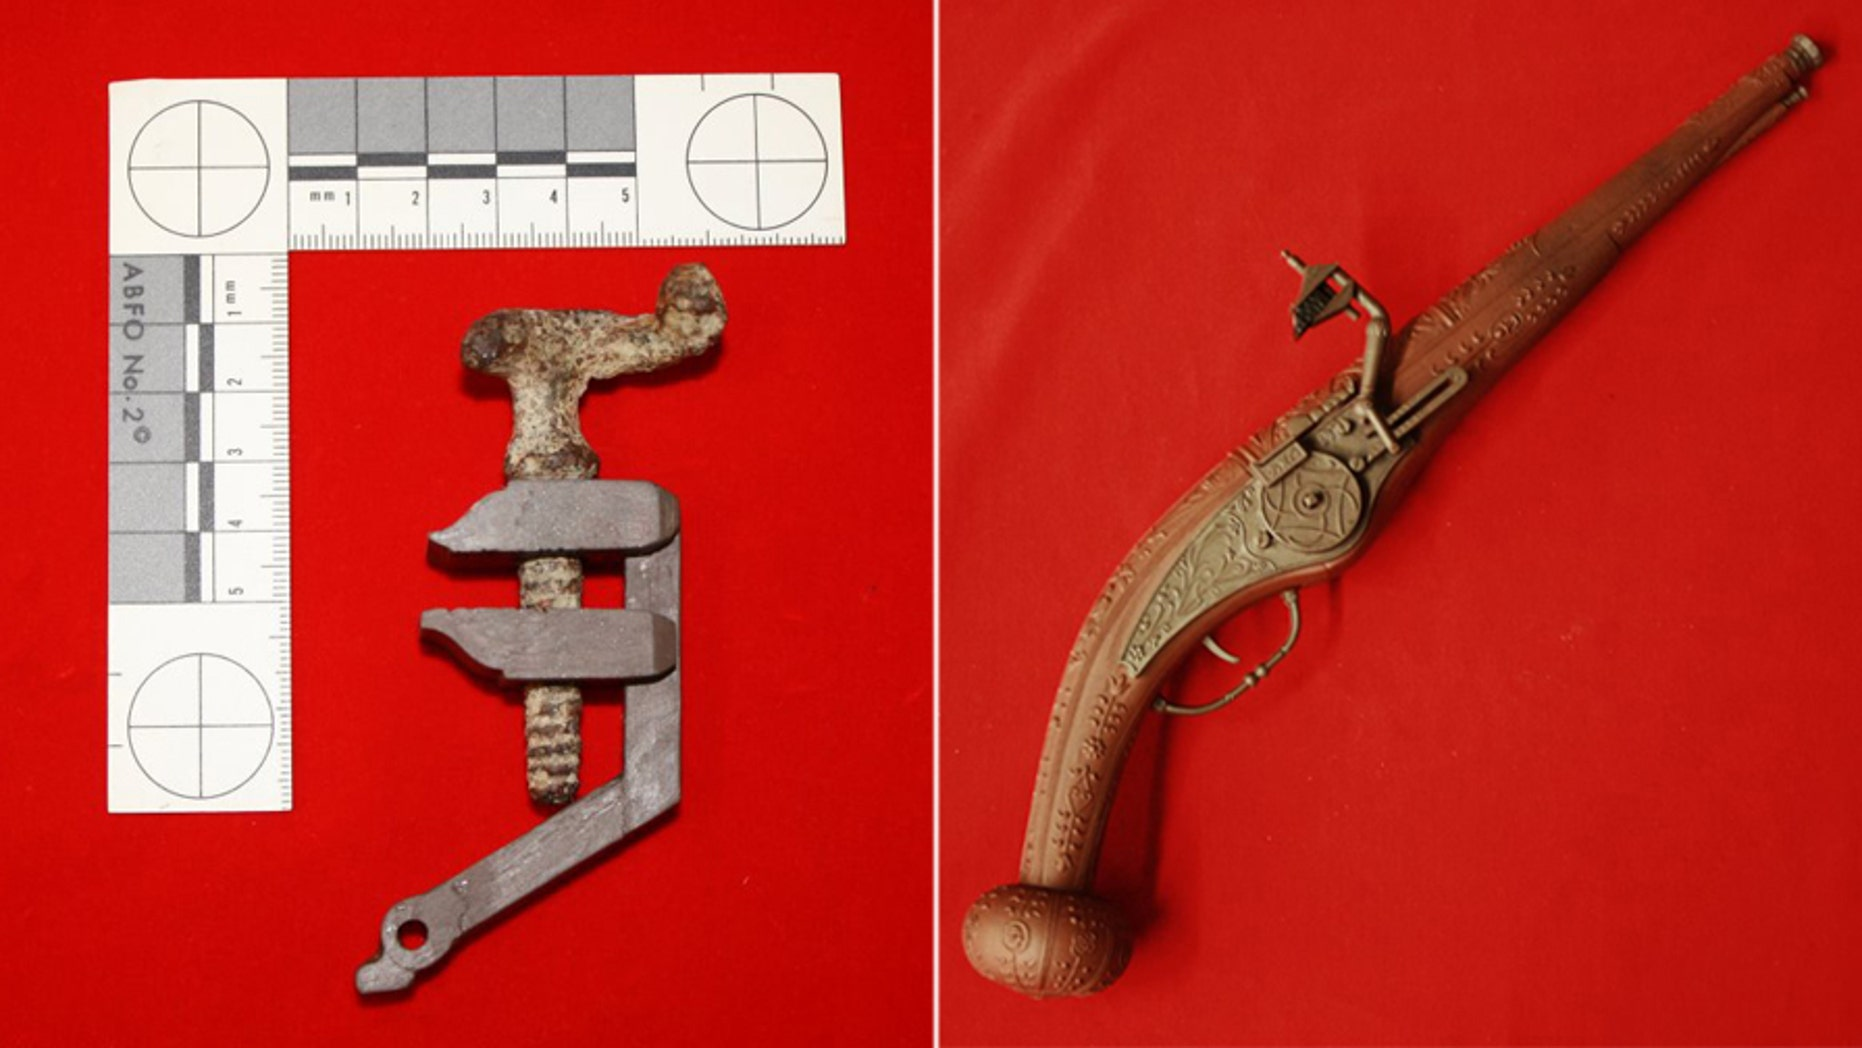 The dog screw in a recreated wheellock arm and a model wheellock pistol (Courtesy of the Museums of Western Colorado)